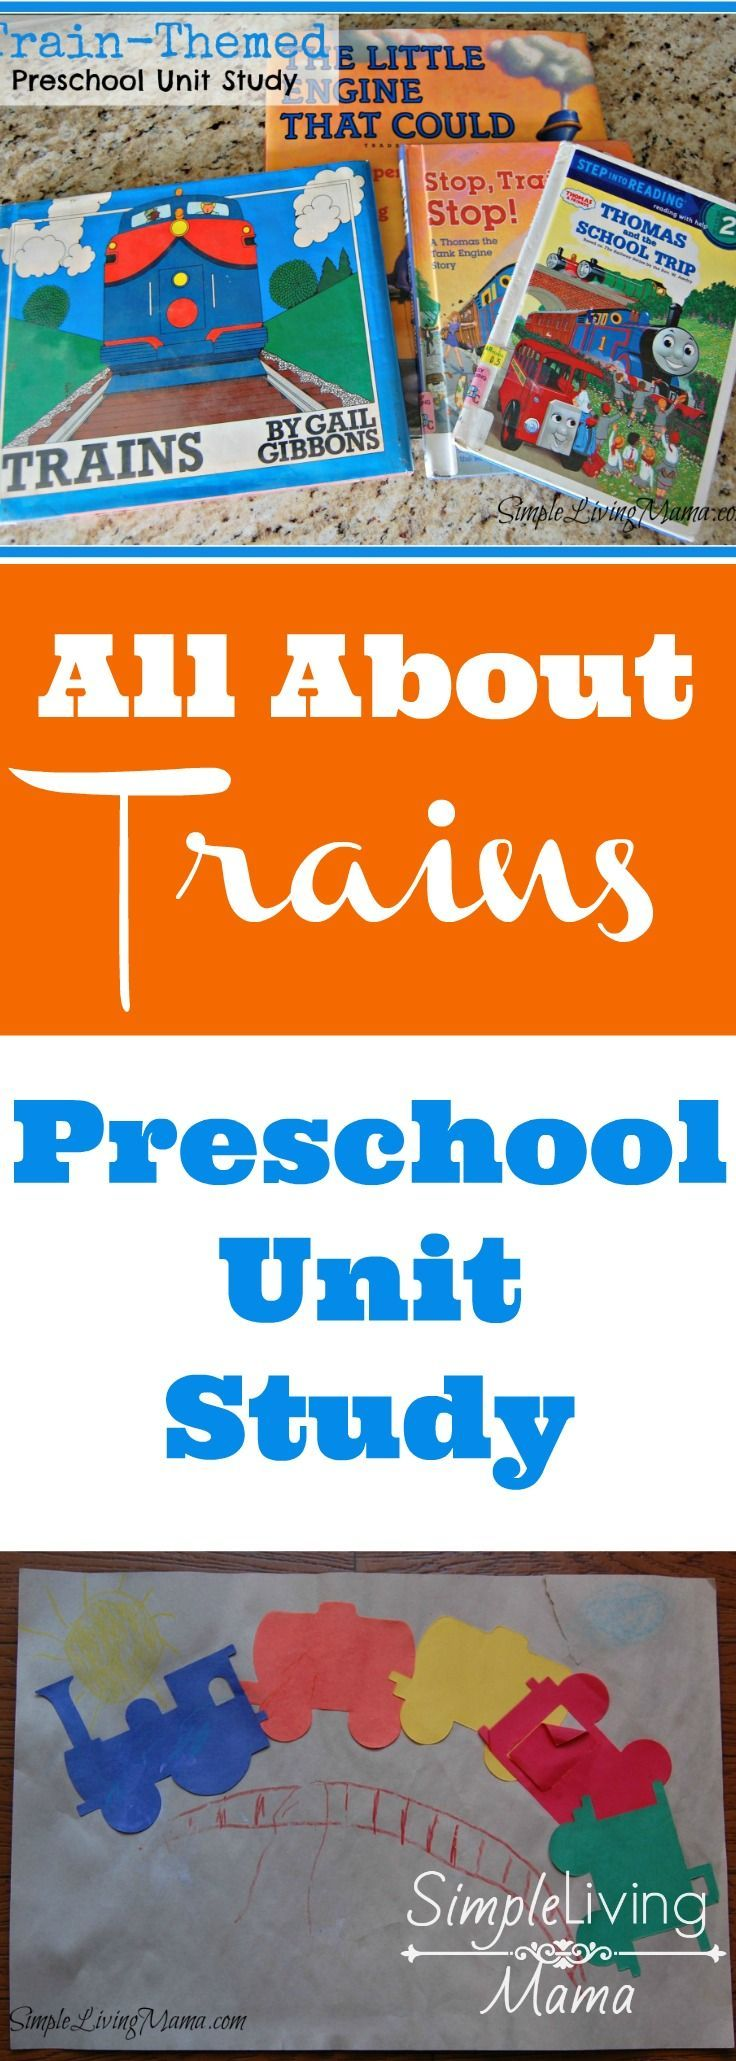 Unit study colors preschool - All About Trains A Preschool Unit Study On Trains